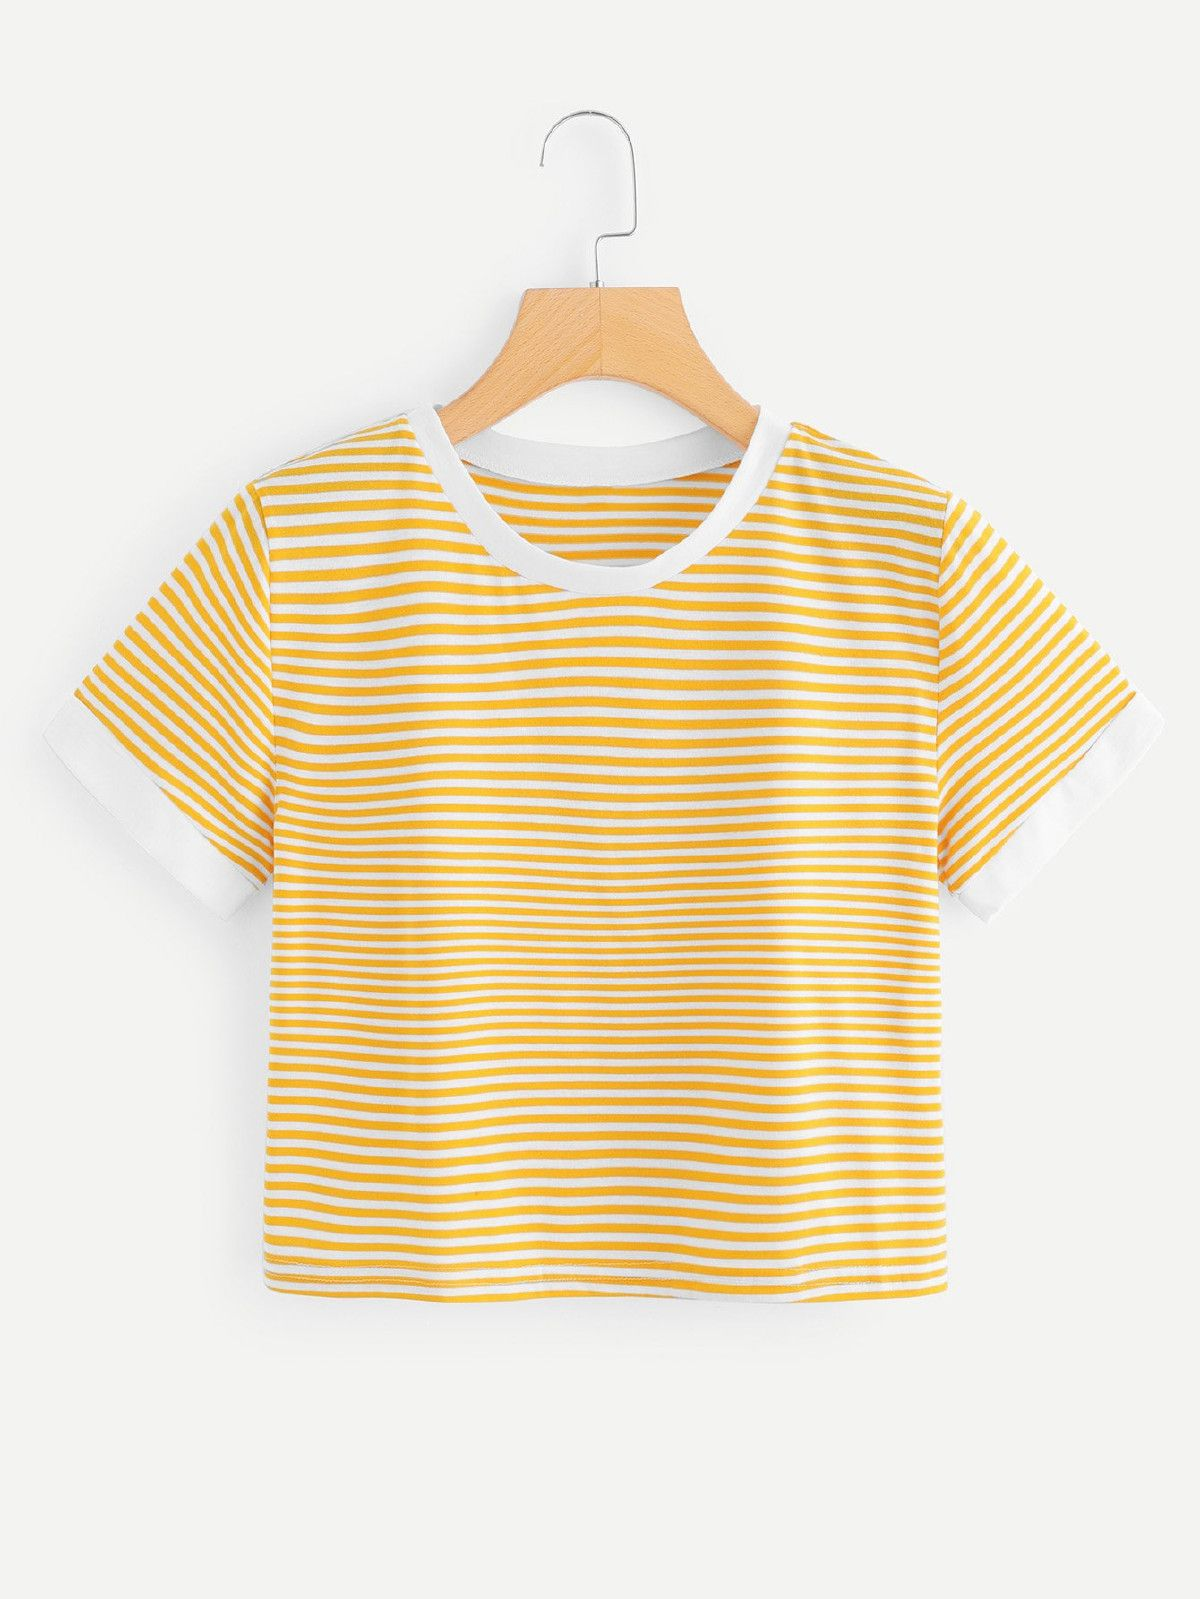 e87bdc9d9 Contrast Trim Striped TeeFor Women-romwe. Contrast Trim Striped TeeFor Women -romwe Shirt Outfit, Outfits With Striped Shirts, Yellow